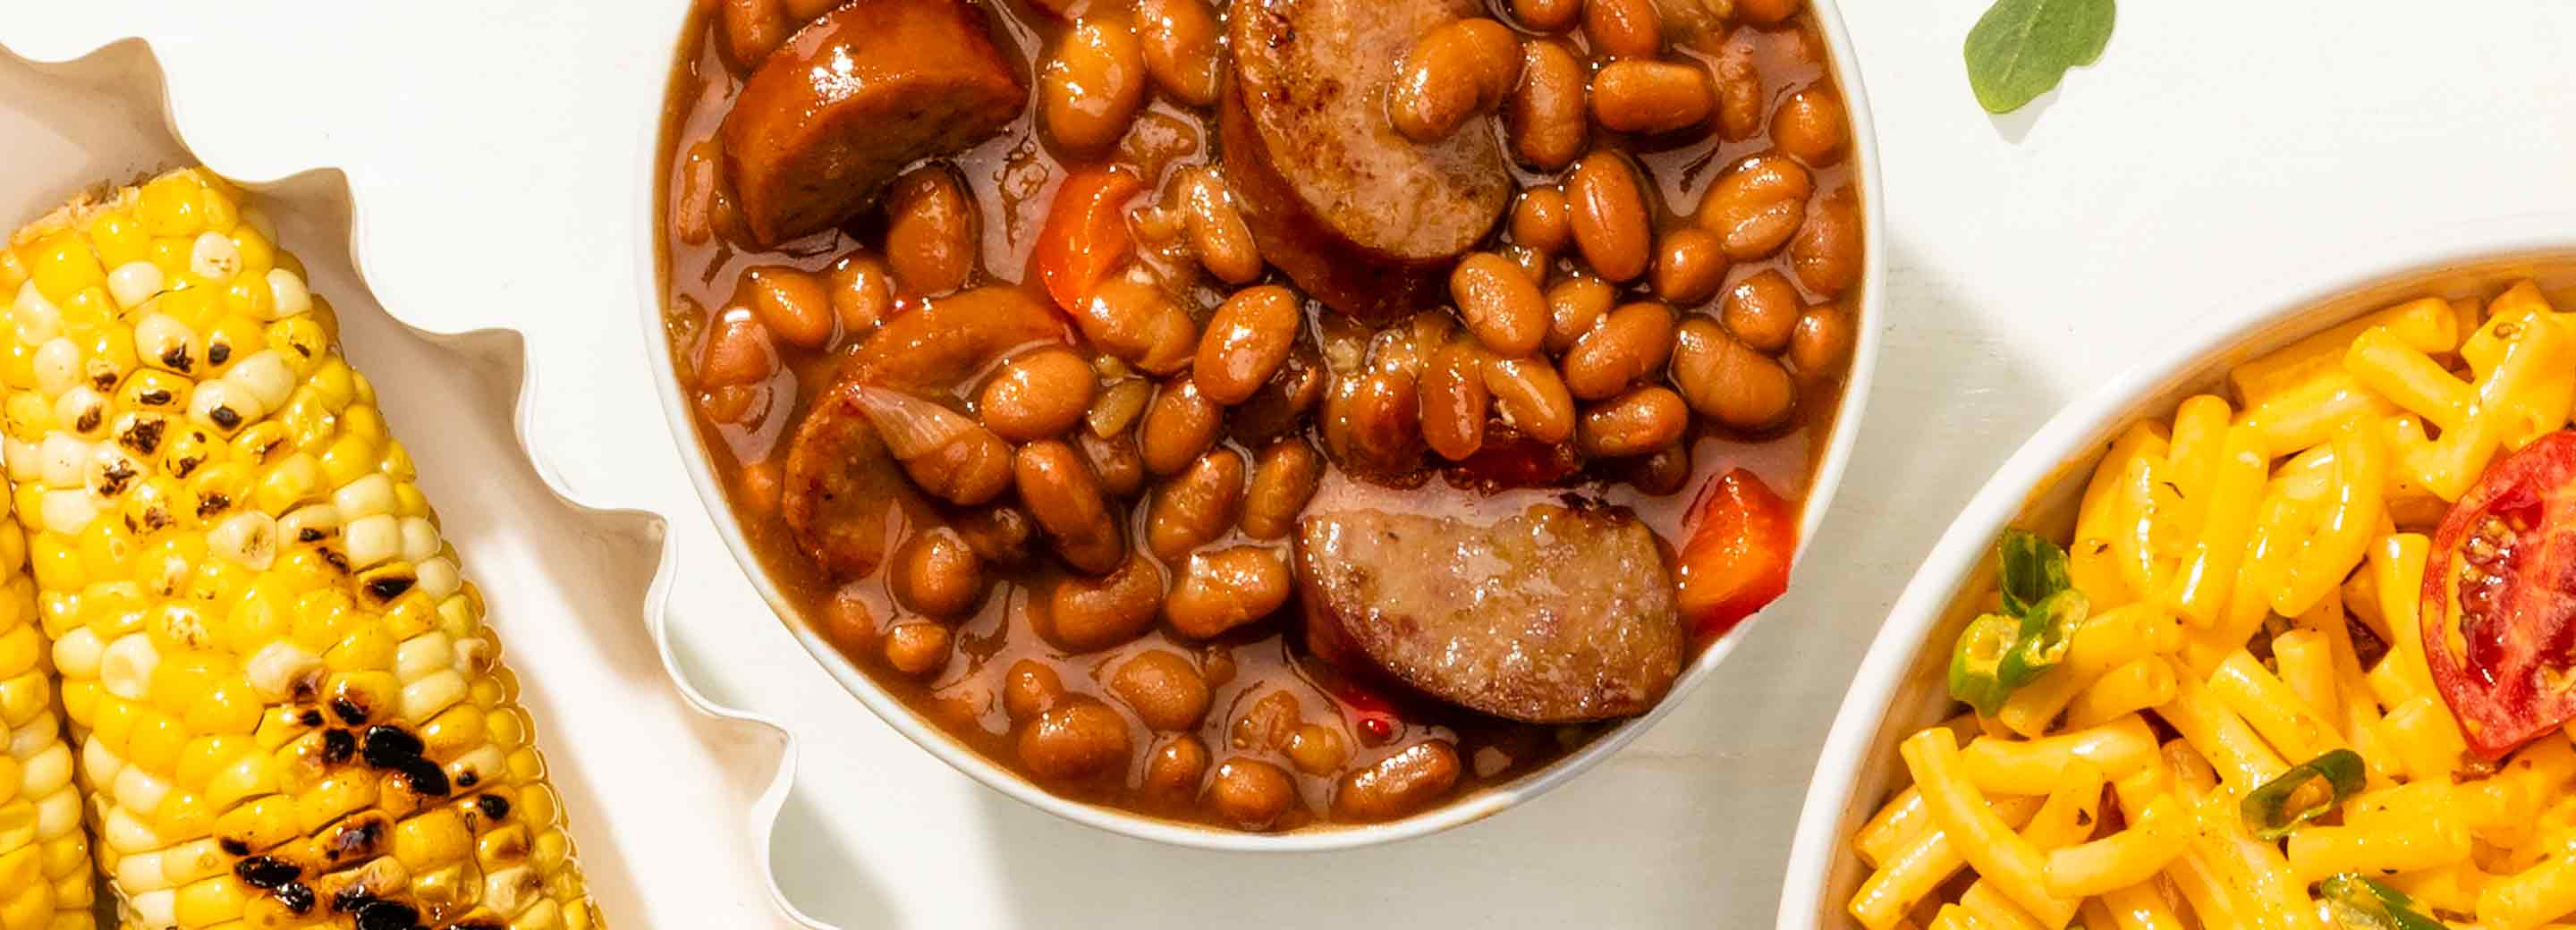 Barbecue Brats 'n' Beans